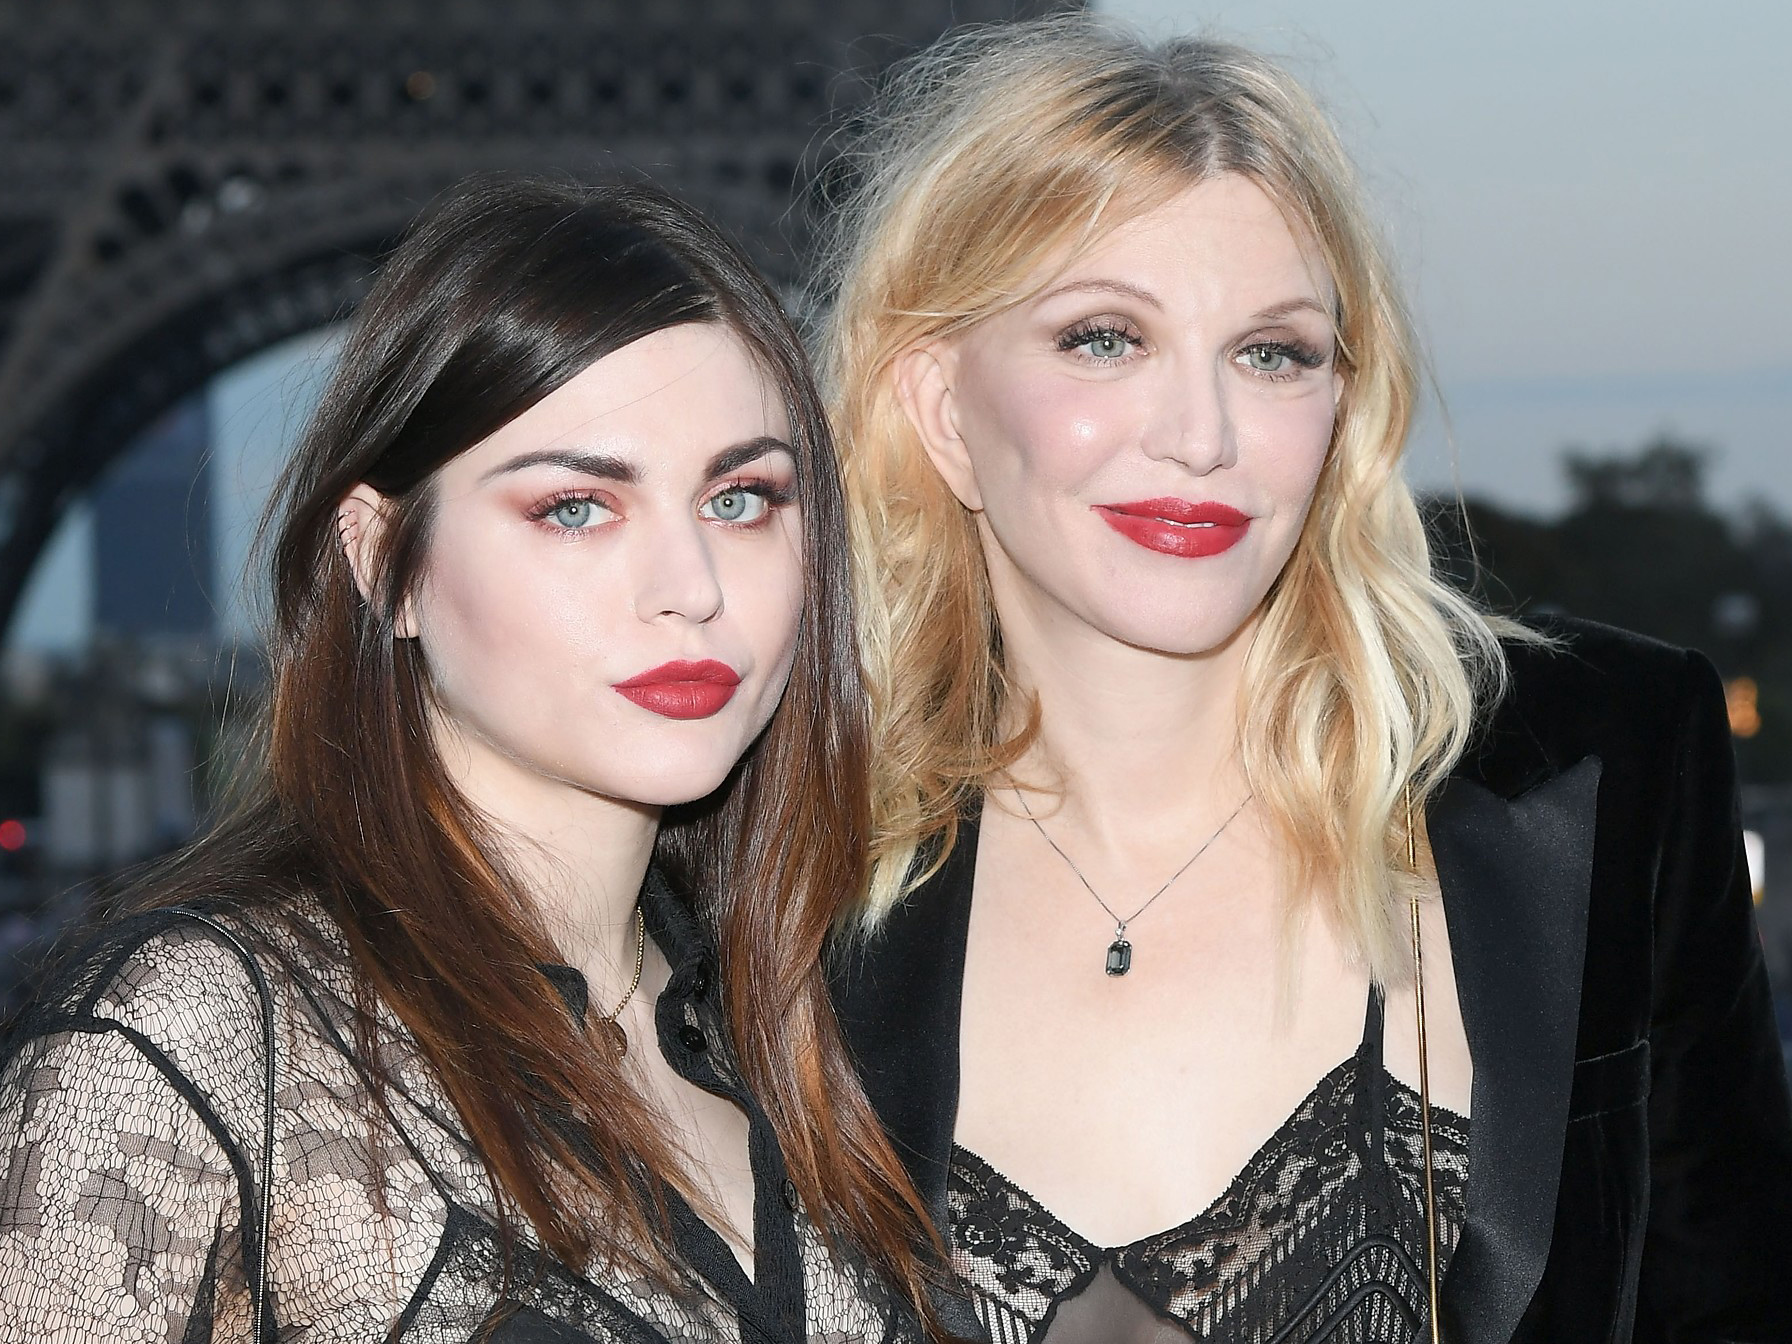 Francis Bean Cobain Courtney Love - Embed